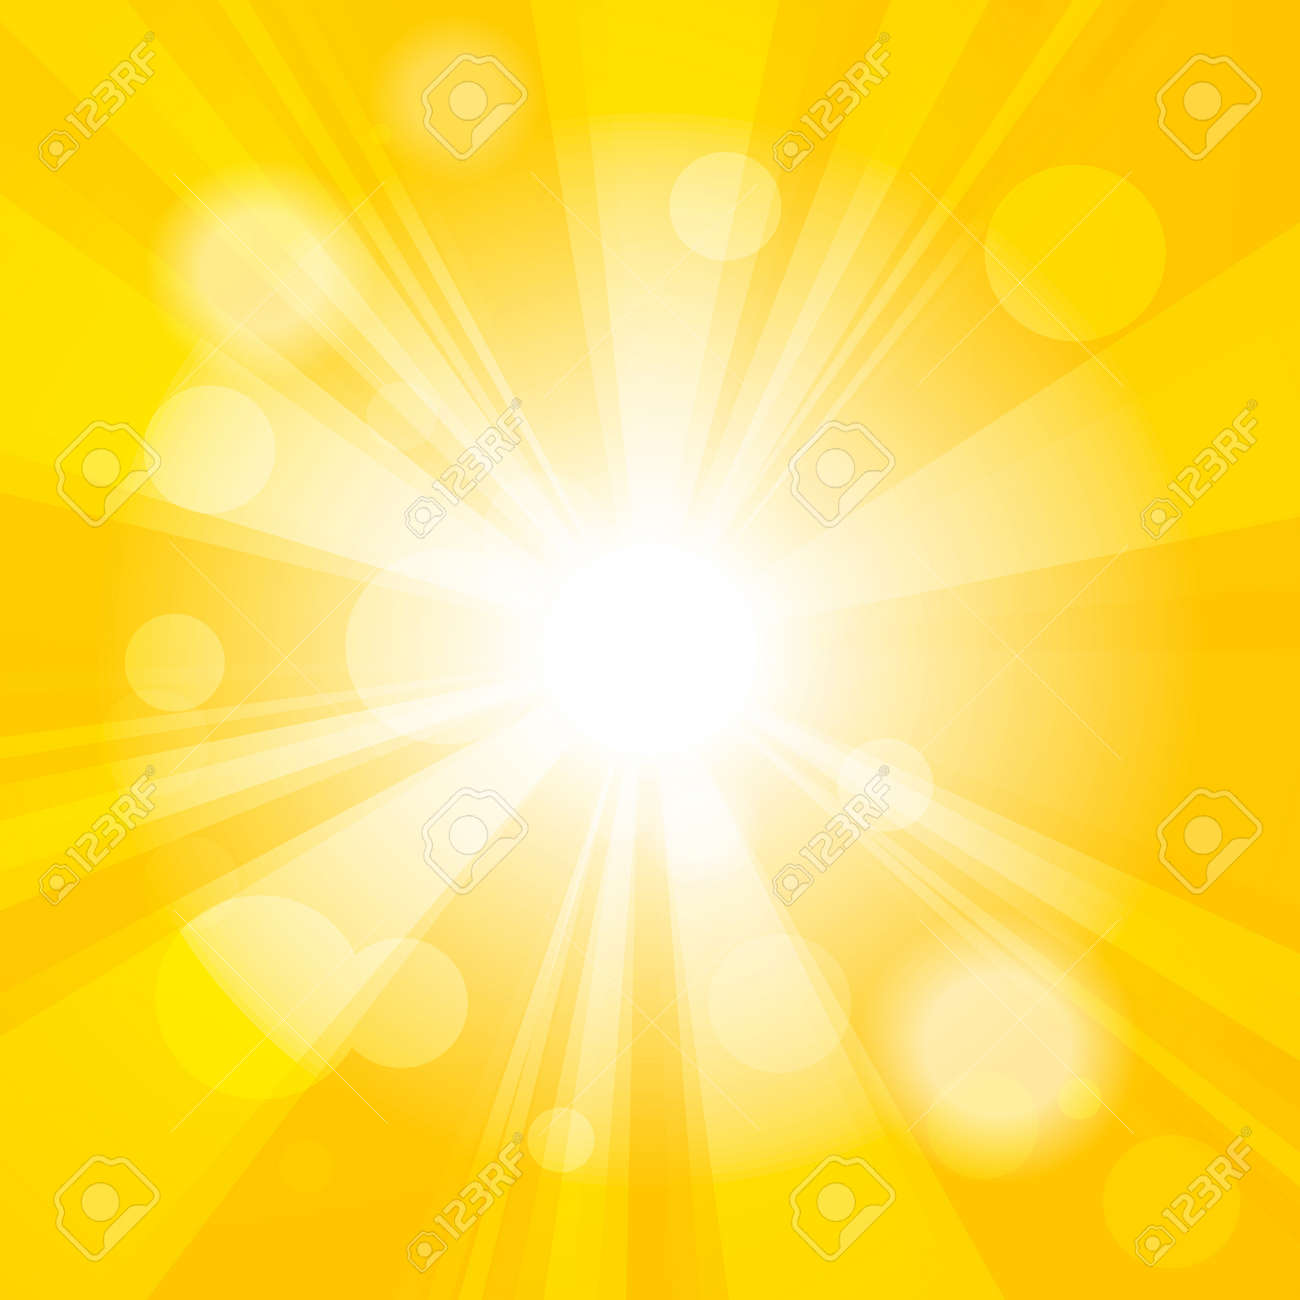 Bright Yellow Wallpaper bright yellow abstract festive bokeh sun effect background royalty